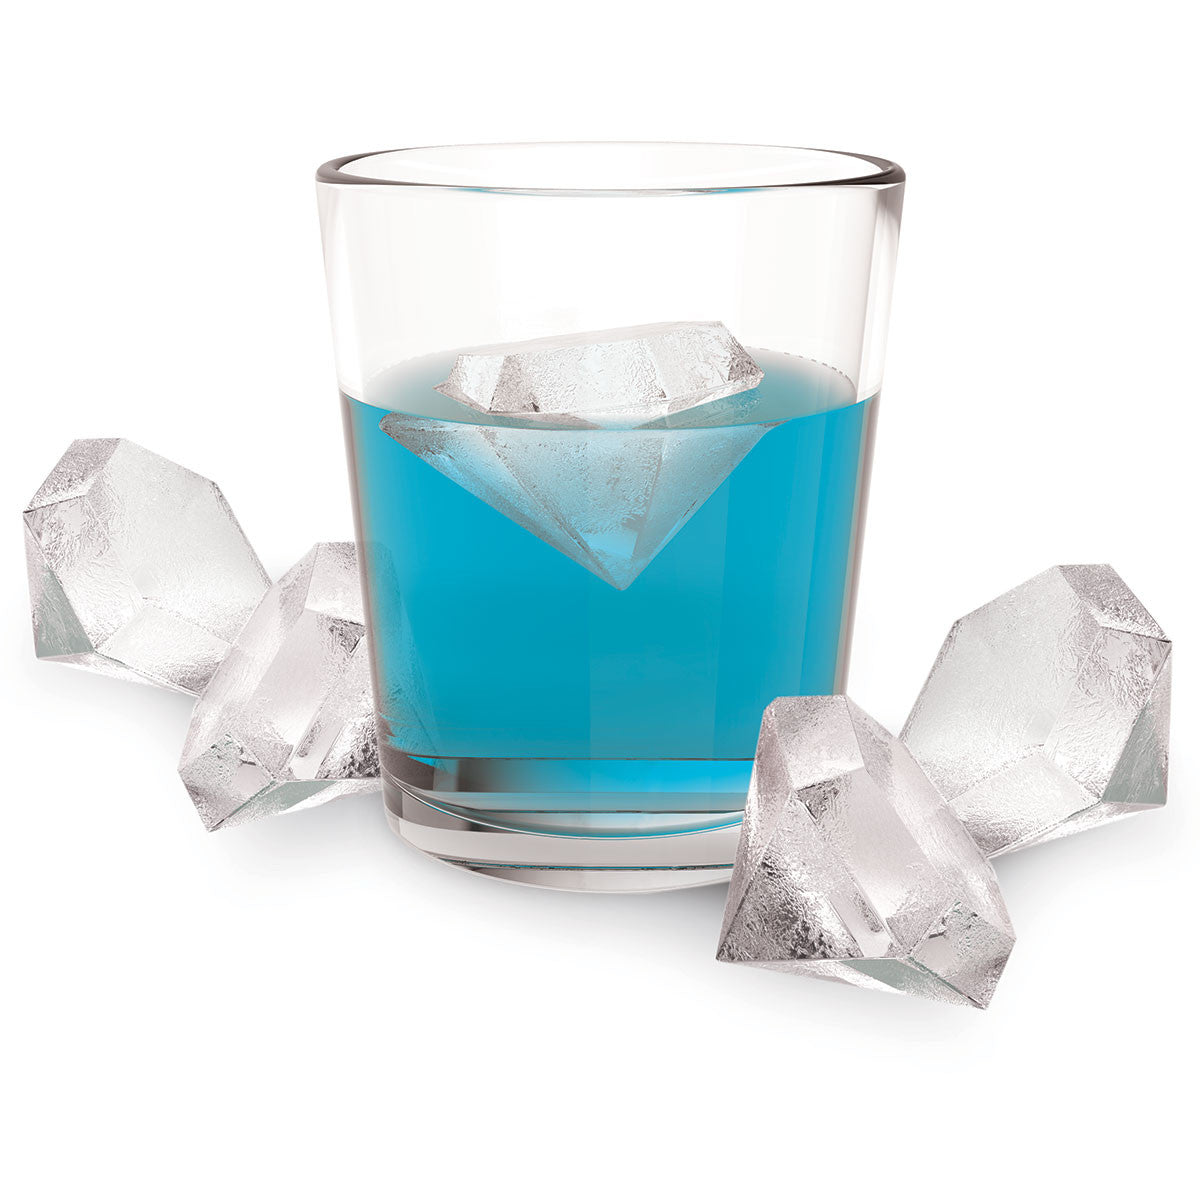 Iced Out Diamond Ice Cube Tray - Only £9.99